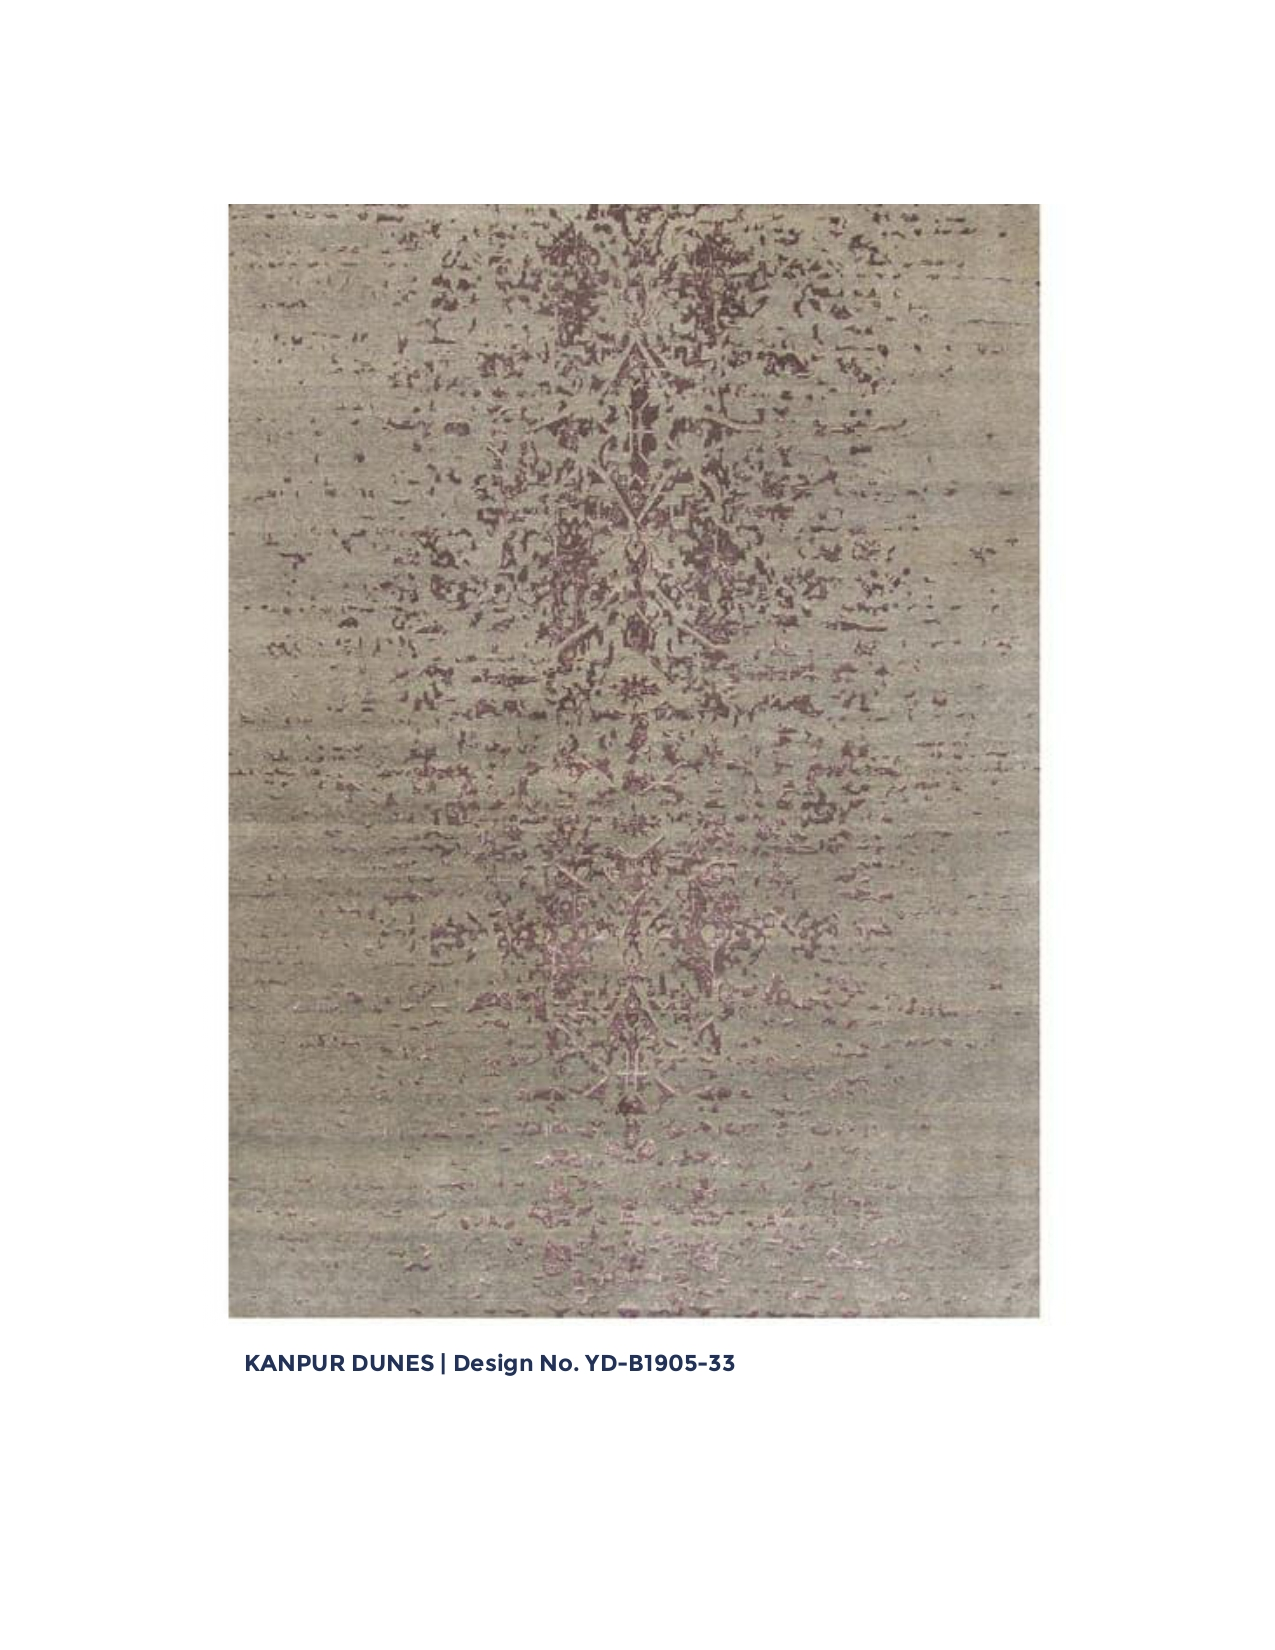 Hand_Knotted_CC_1905_38.jpg